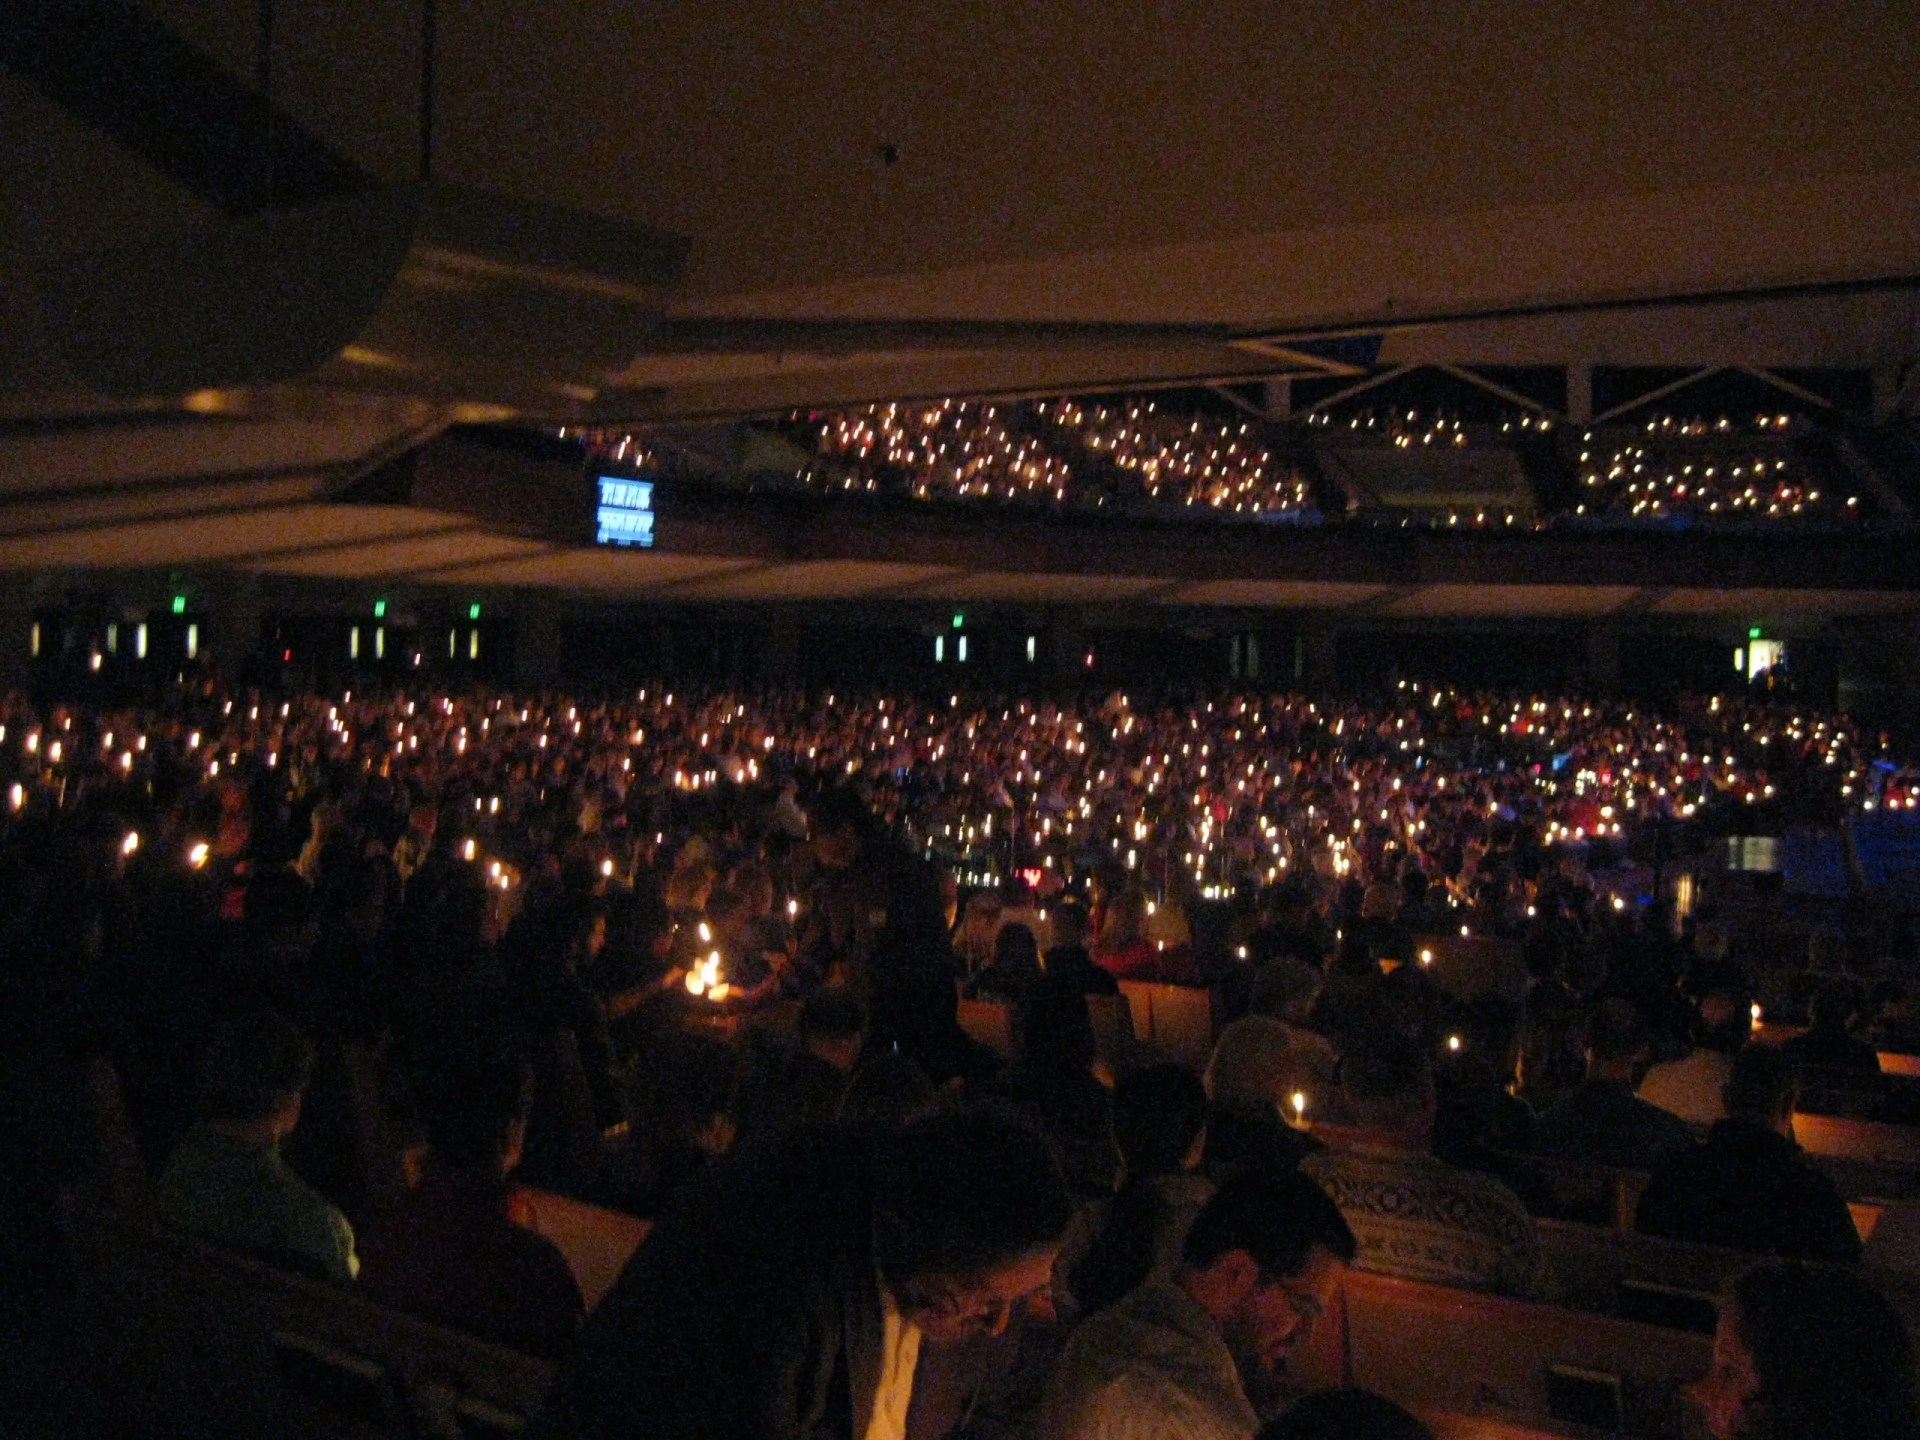 Thousands gather for Christmas Eve services a day before Christmas Eve. (Brookfield, Wisconsin, December 23, 2014)